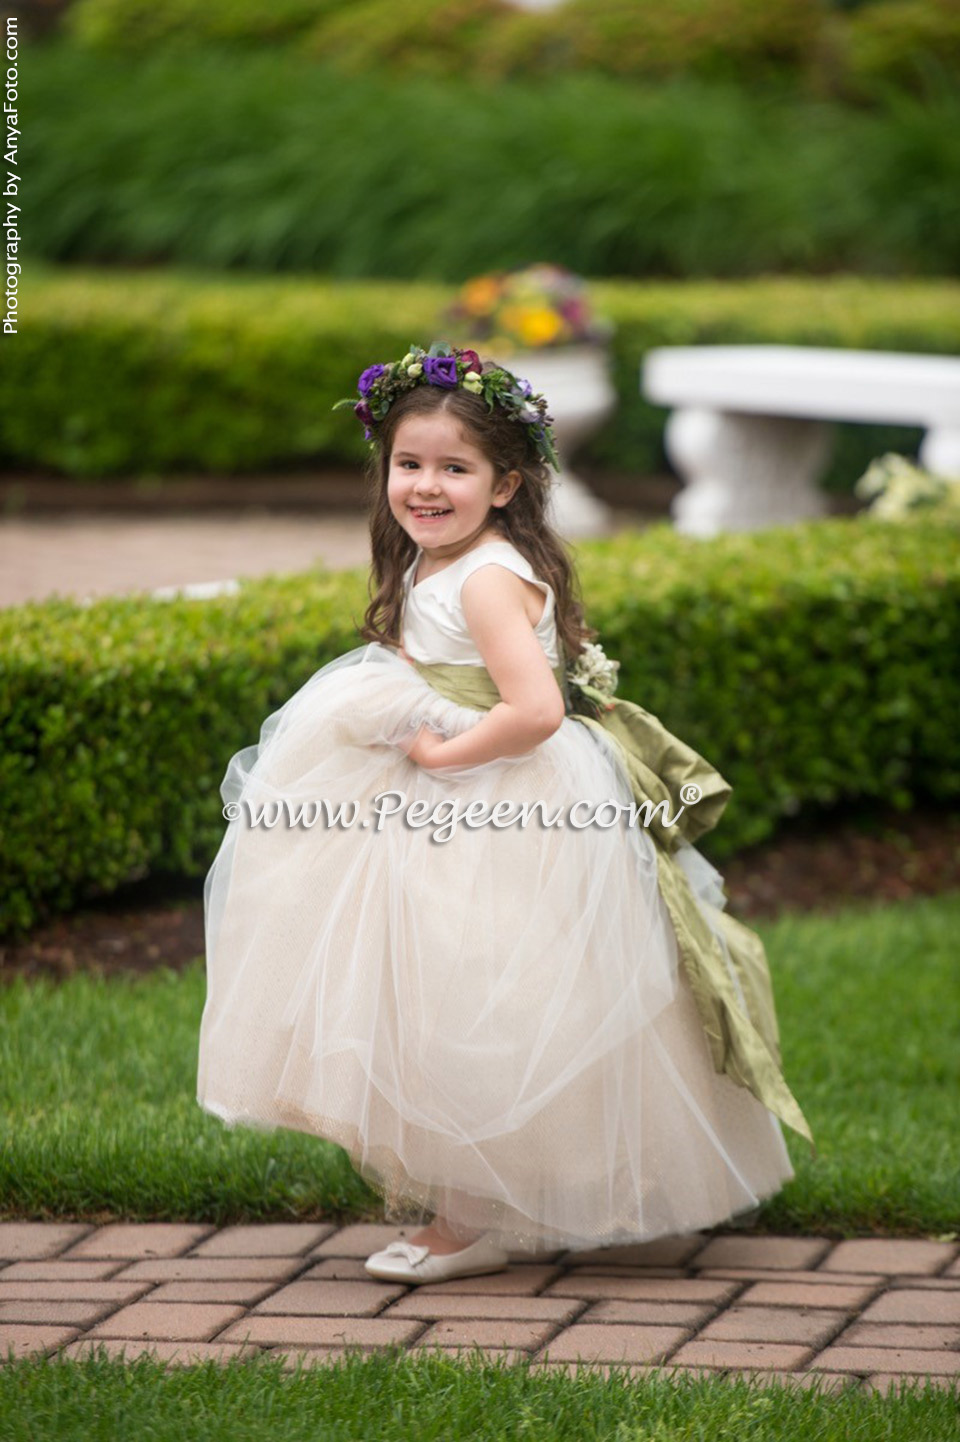 2017 Wedding and Flower Girl Dresses of the Year Winner